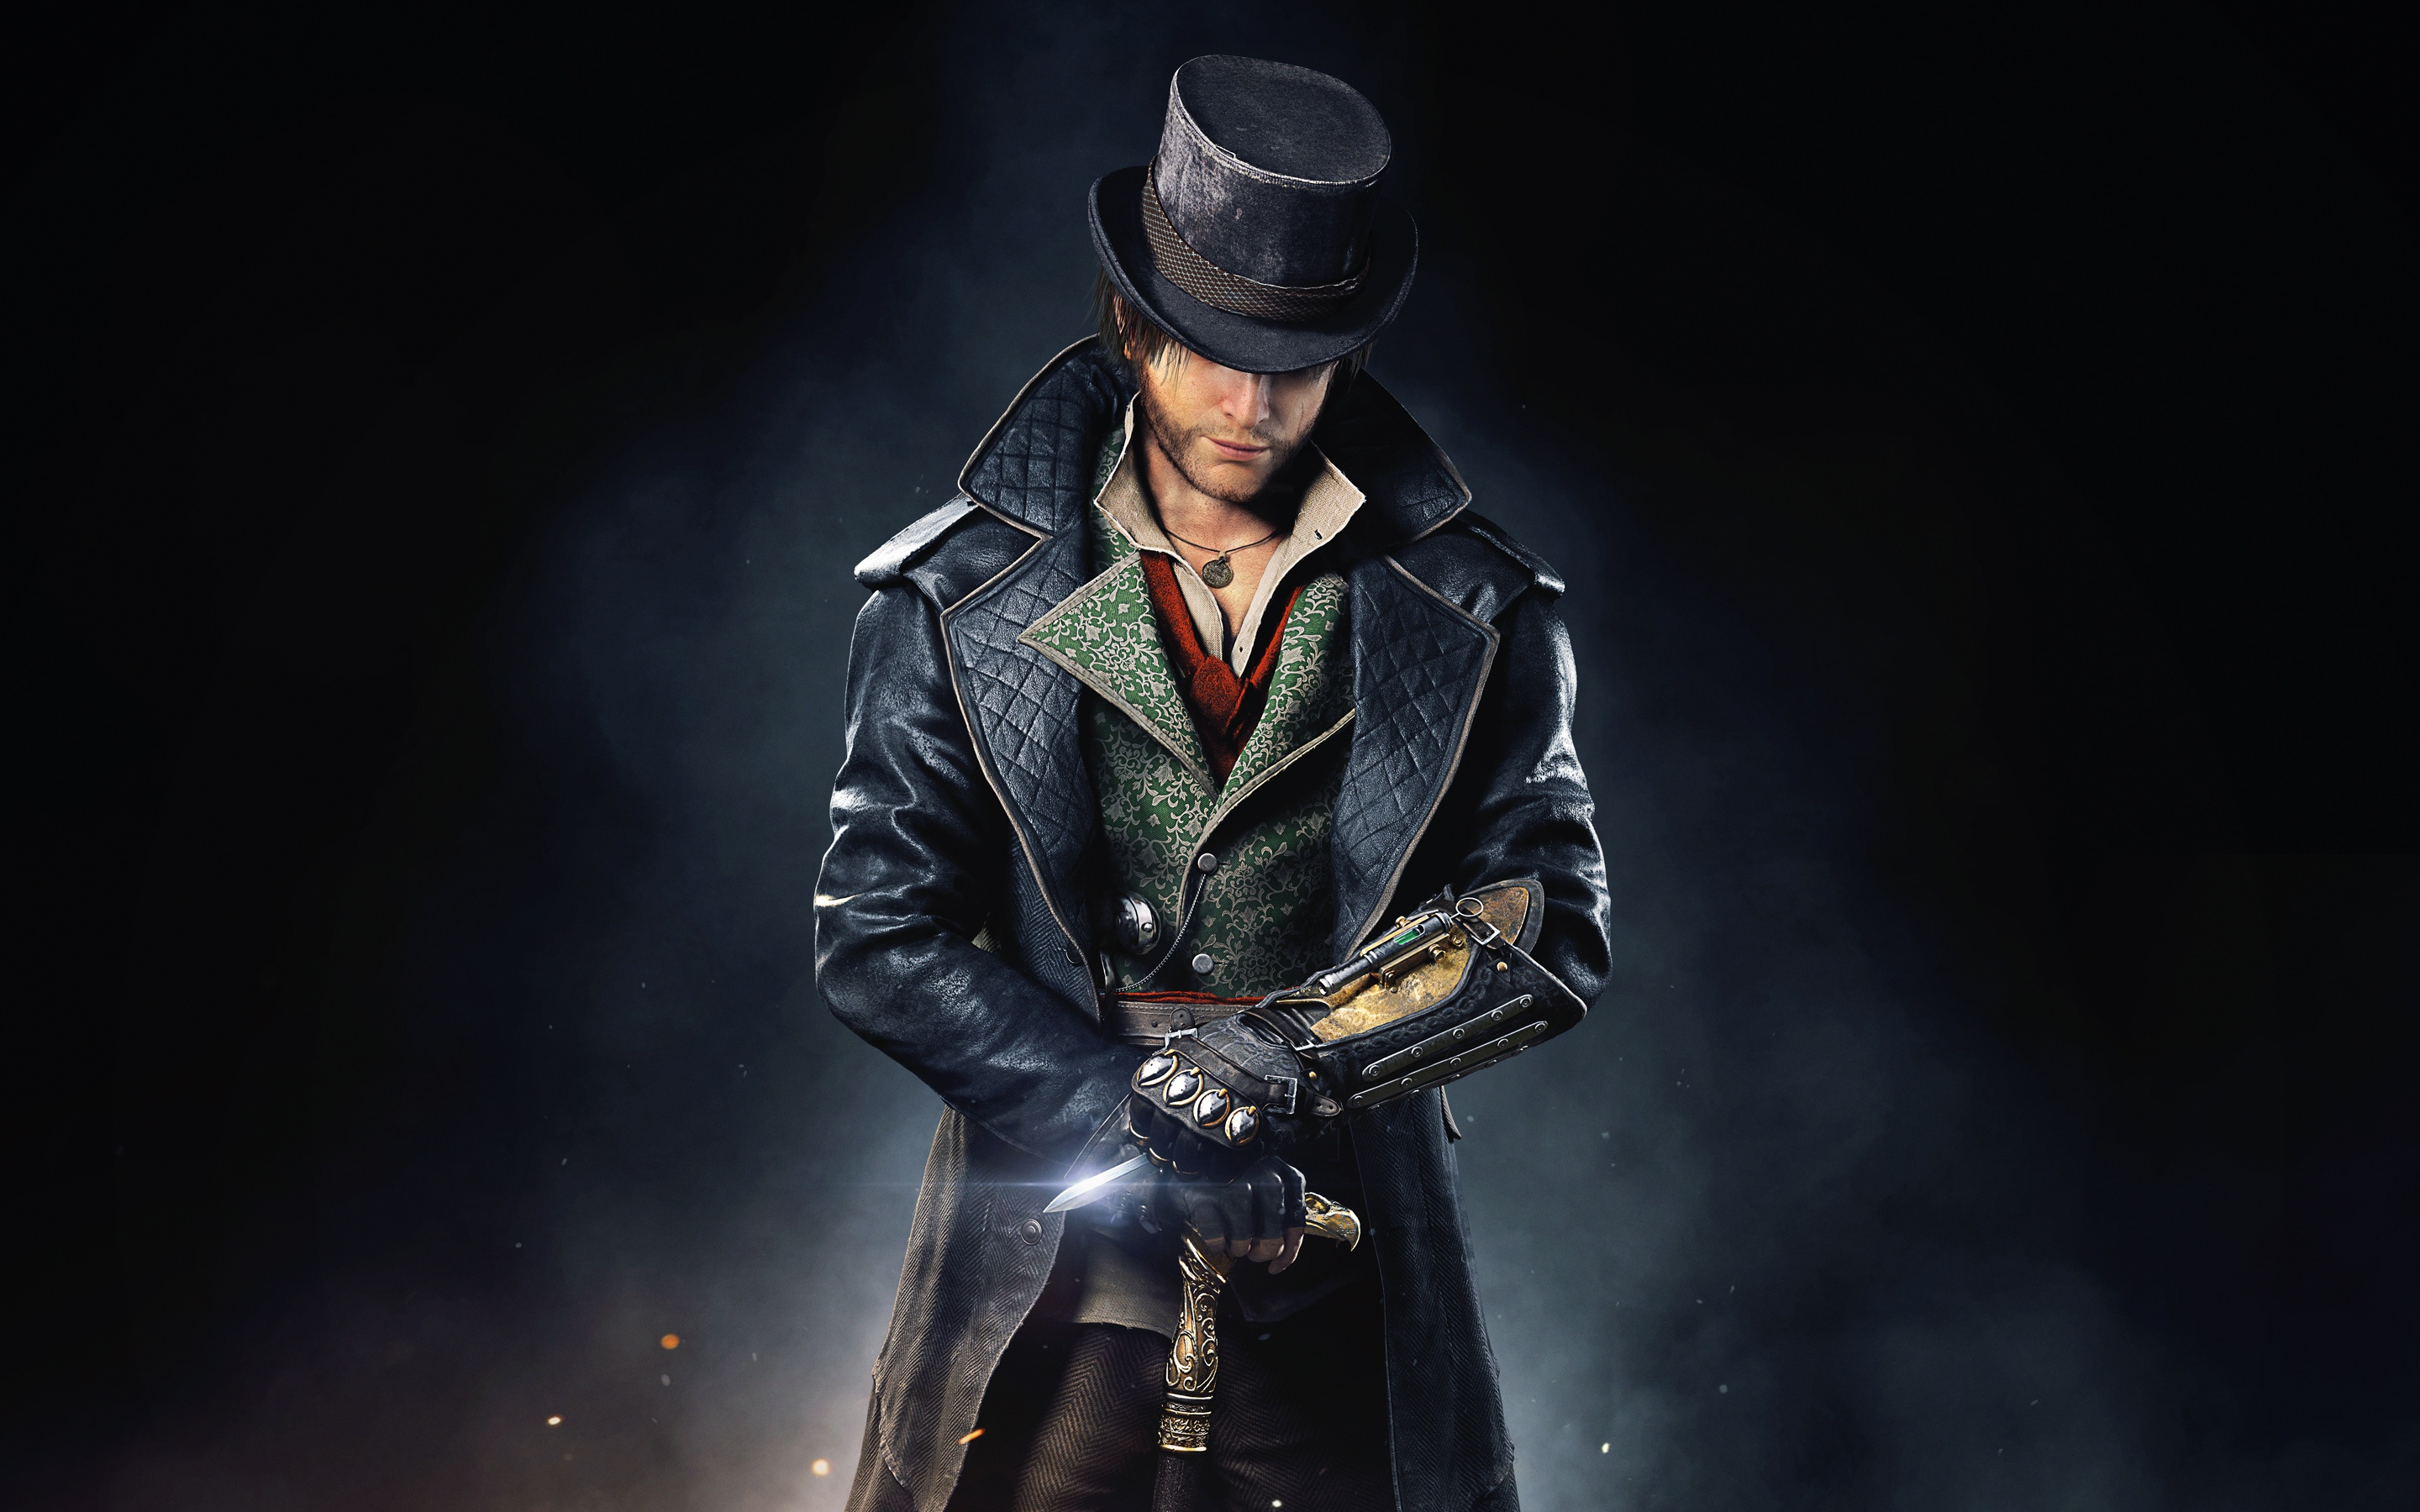 Jacob Frye Assassin S Creed Syndicate Wallpapers In Jpg Format For